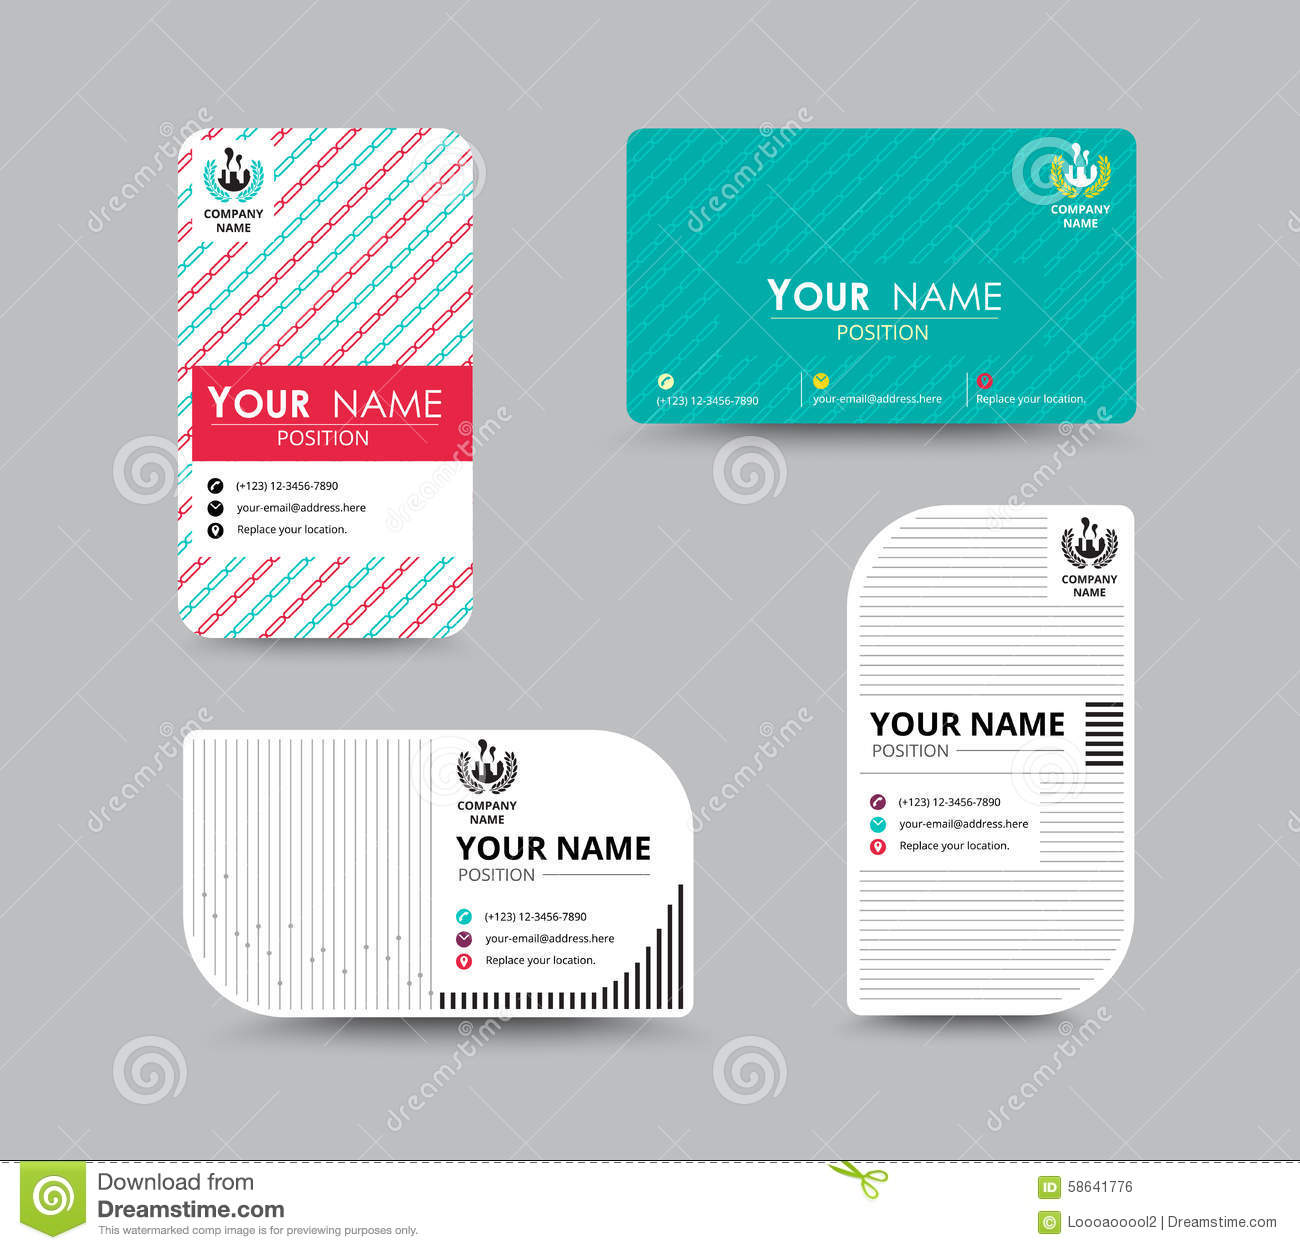 Business Name Card Design For Corporation. Card Template ...